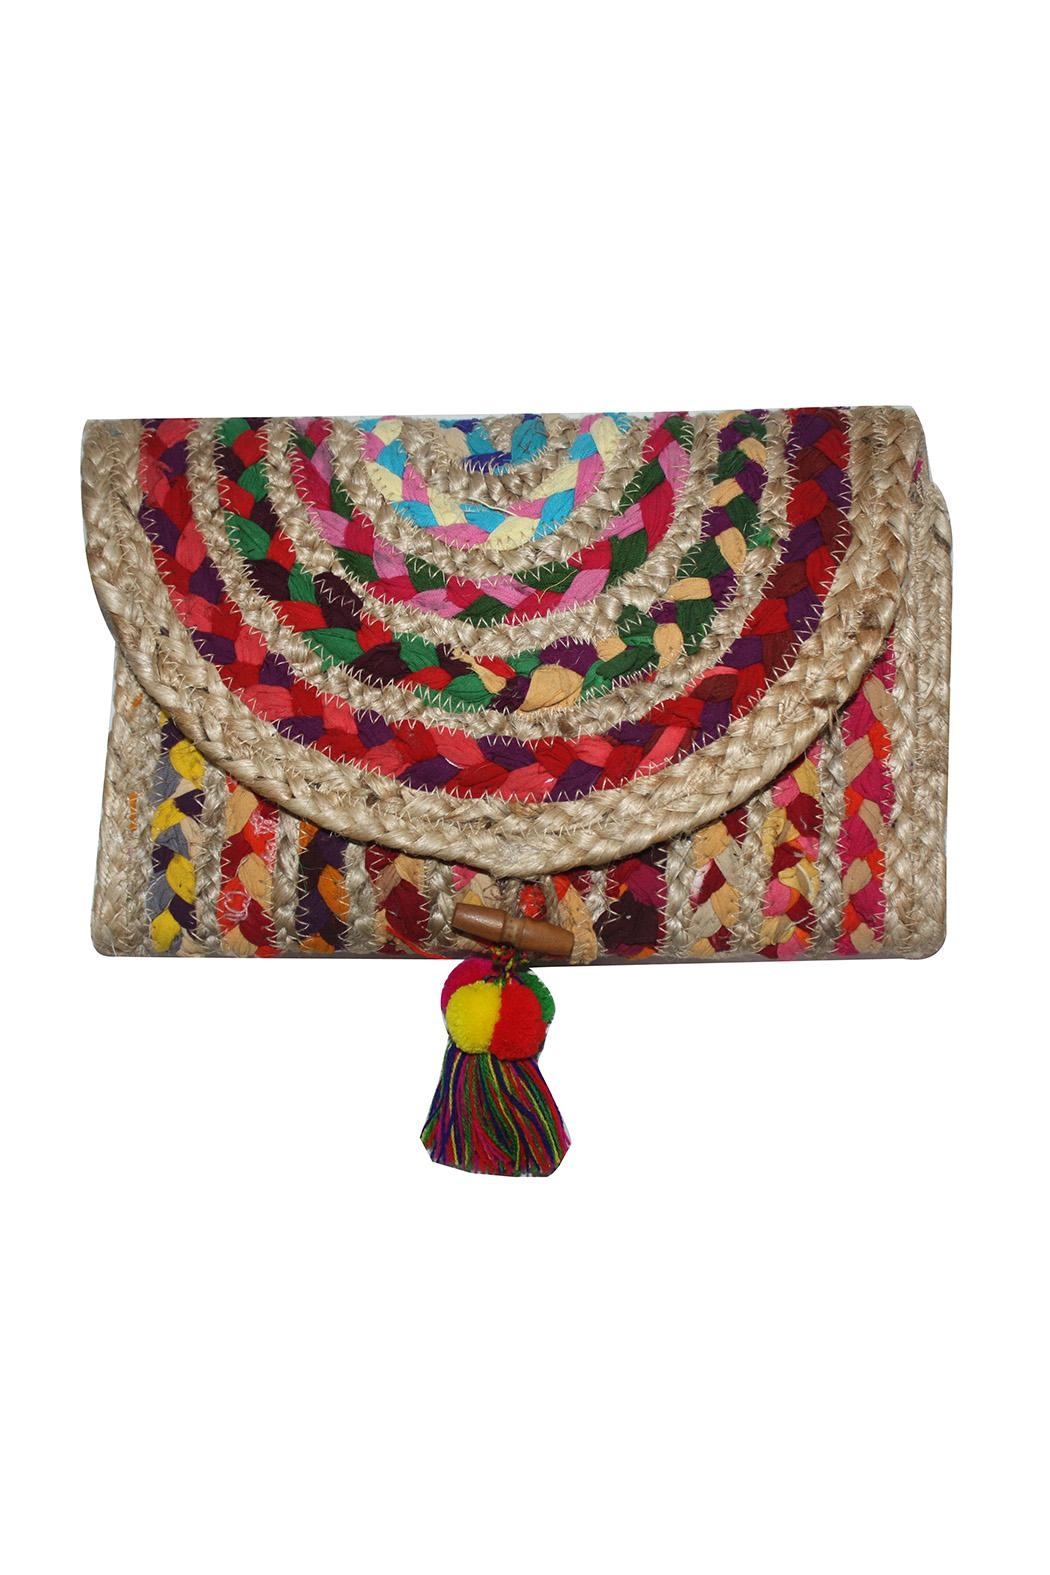 America & Beyond Colorful Braided Clutch - Main Image